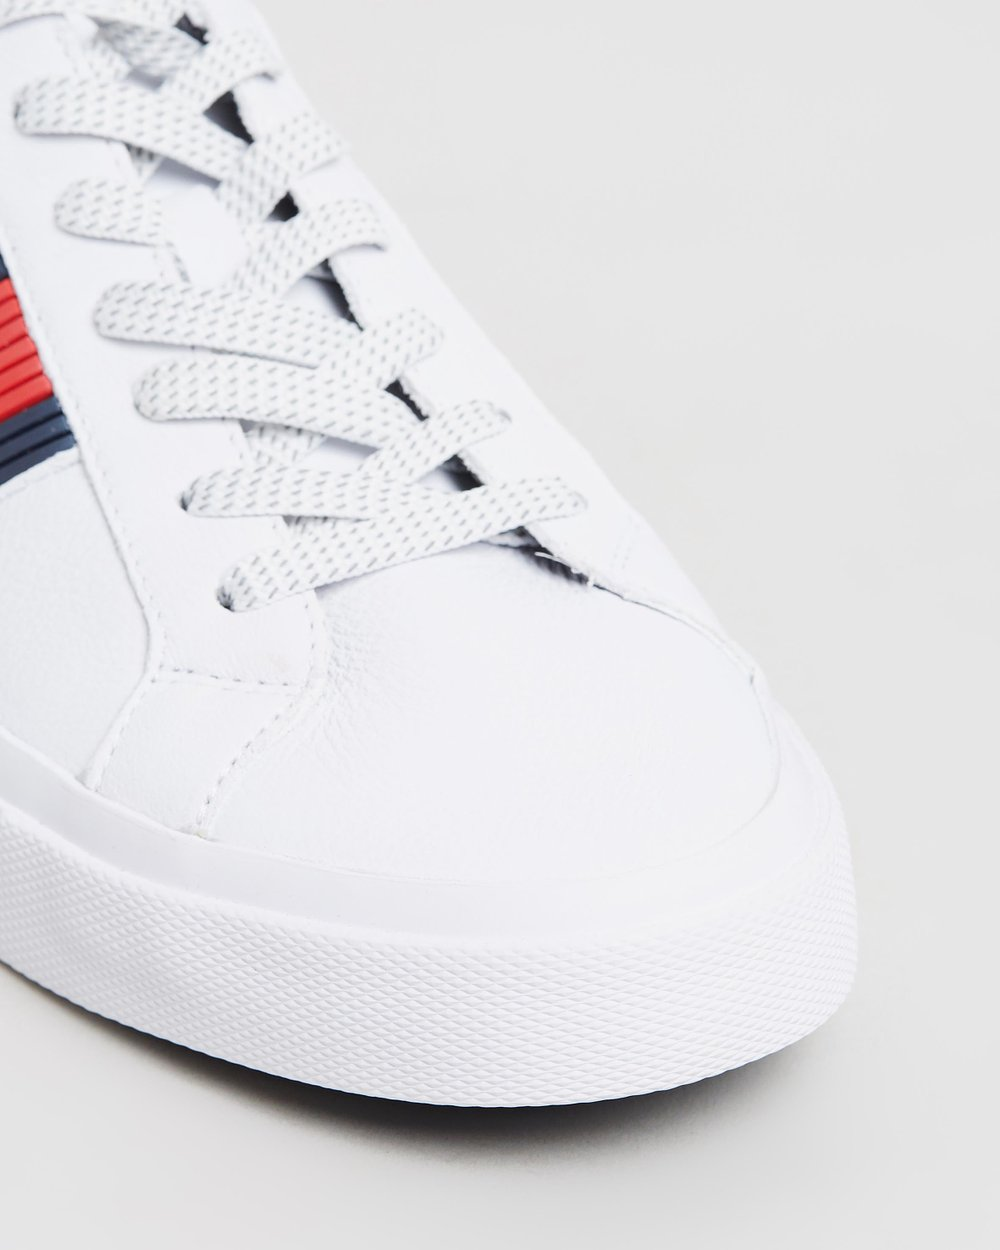 245669a2cee3 Flag Detail Leather Low Top Sneakers by Tommy Hilfiger Online